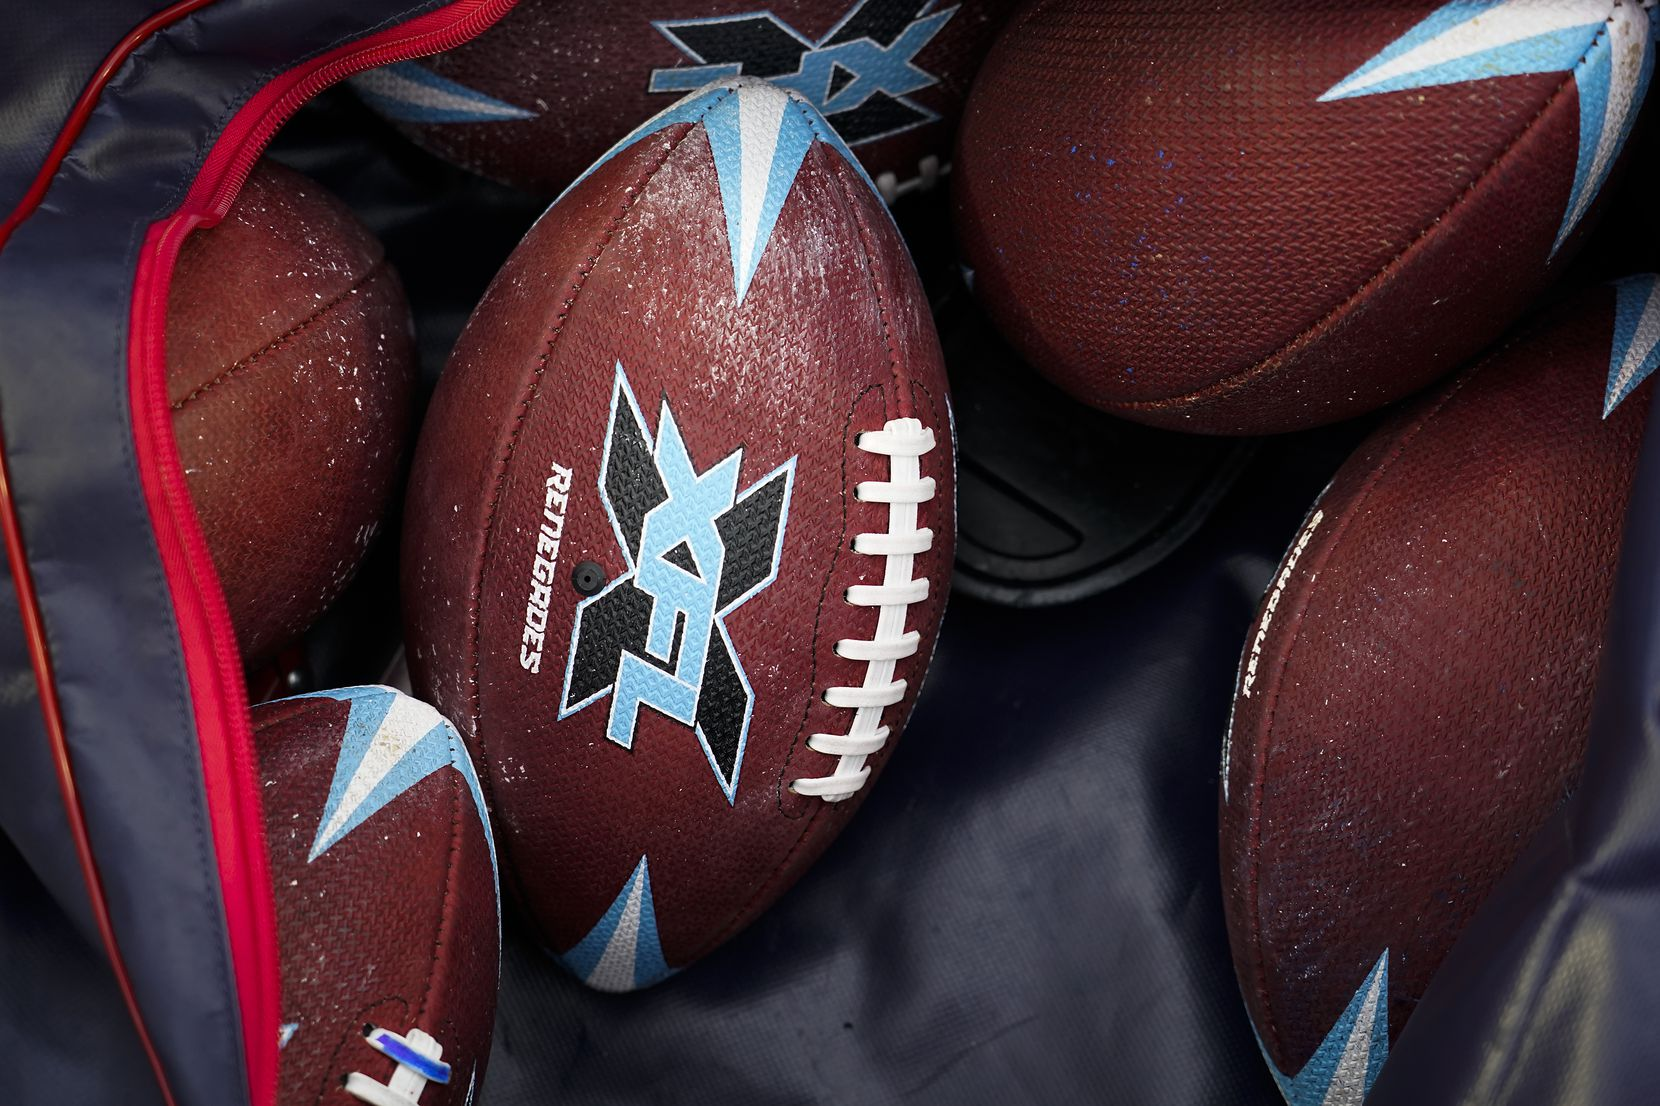 A bag of game balls is seen before an XFL football game between the Dallas Renegades and the St. Louis Battlehawks at Globe Life Park on Sunday, Feb. 9, 2020, in Arlington.